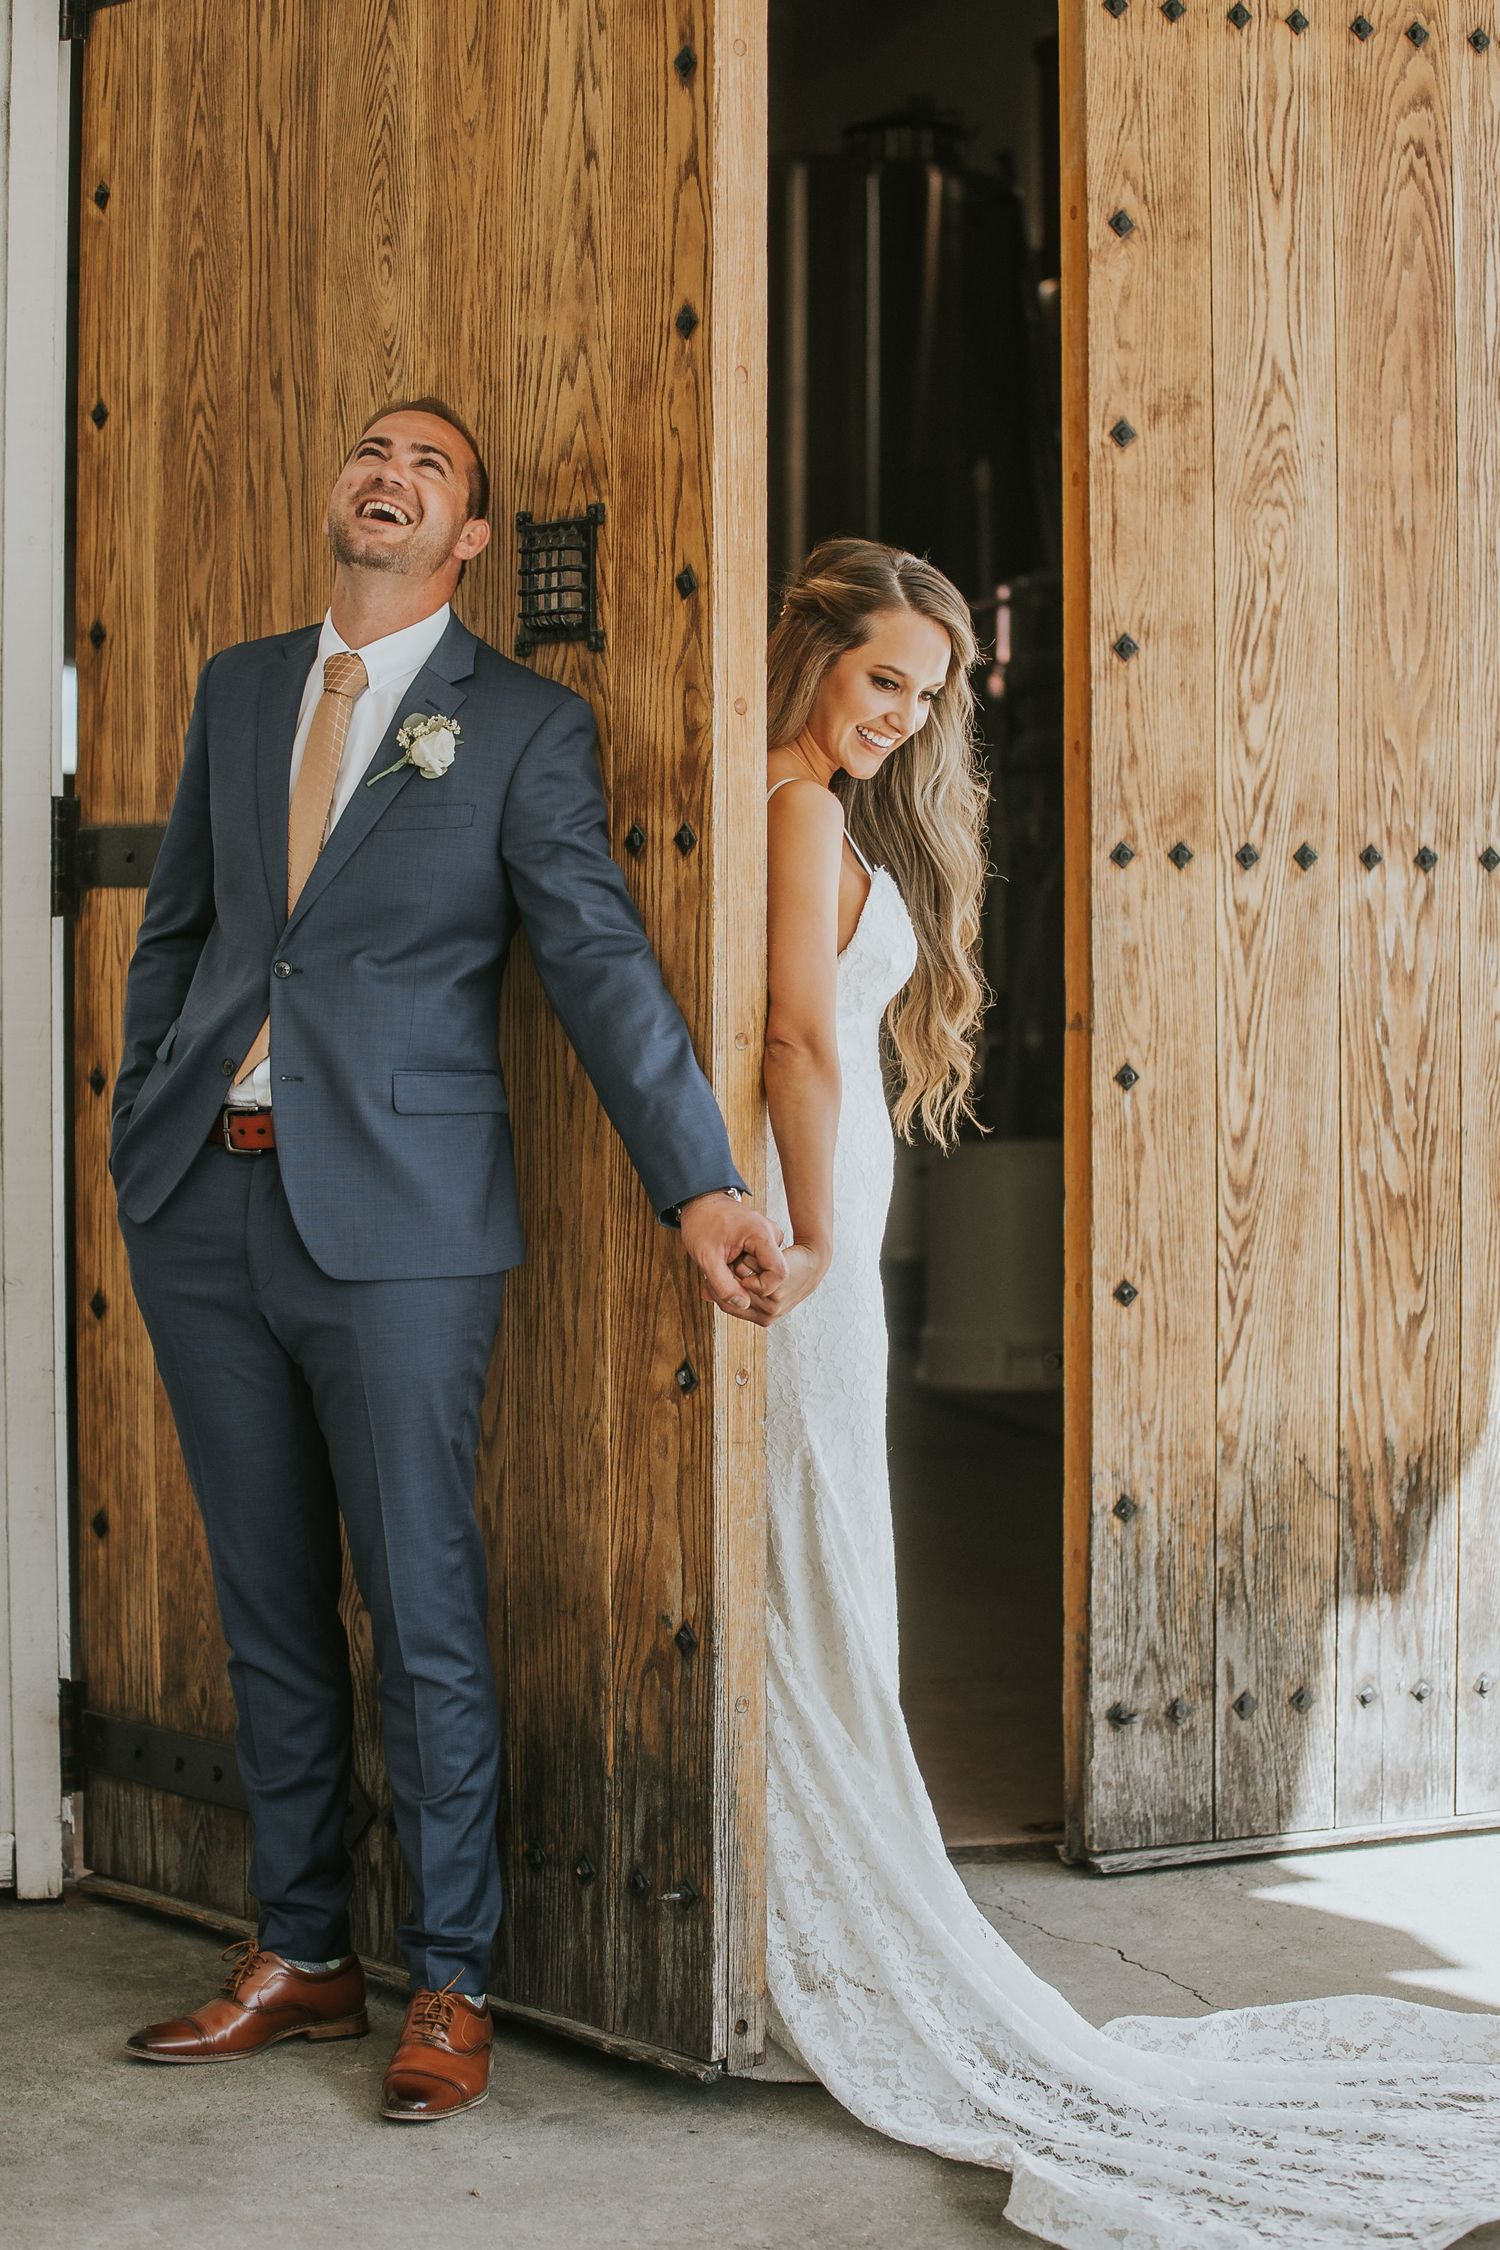 rebecca skidgle photography northen california napa wedding photographer first look bride groom romantic holding hands